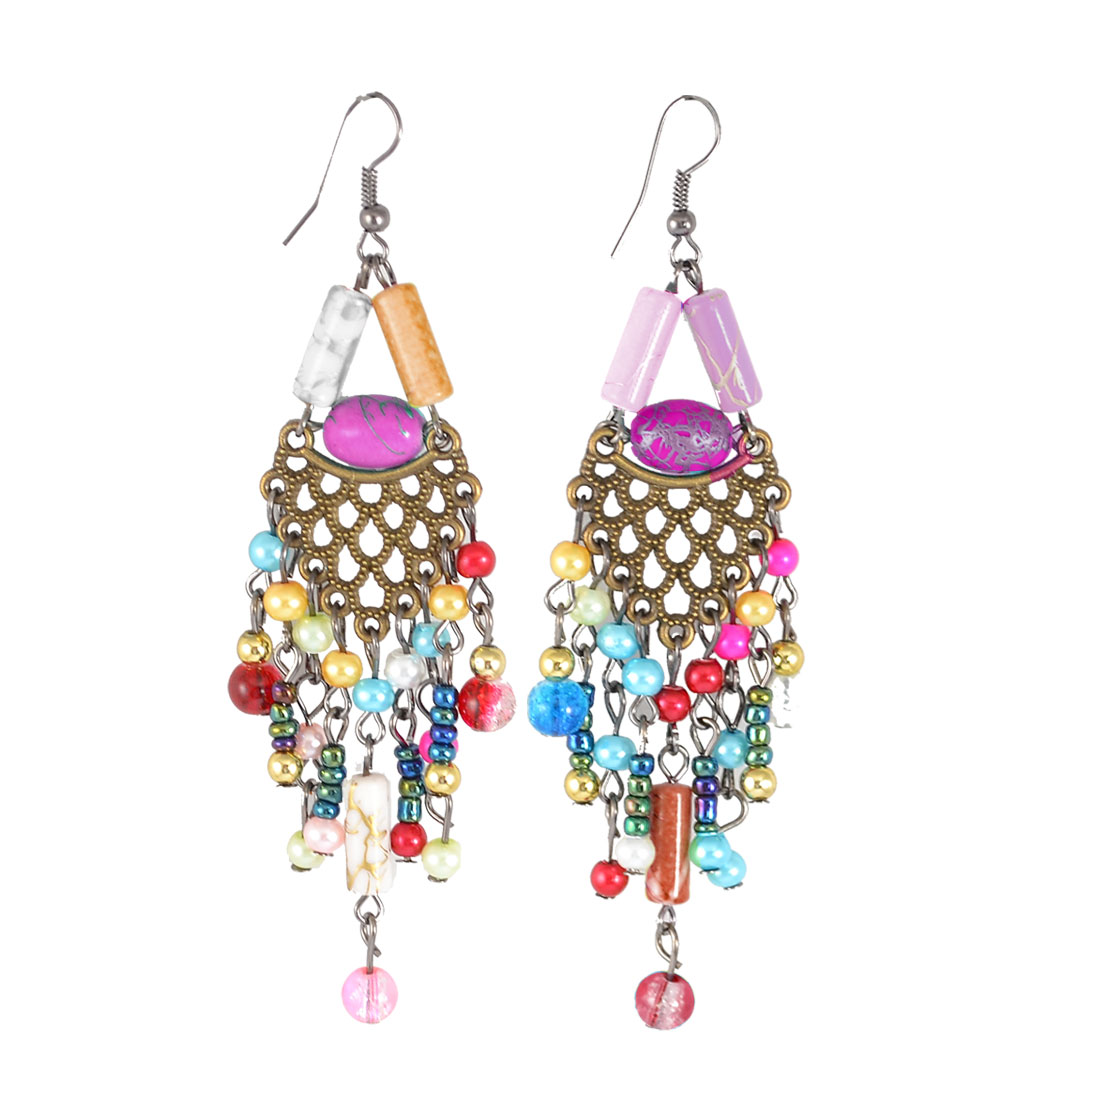 Pair Multicolor Faux Beads Cylinder Decor Folk Fish Hook Earrings for Women